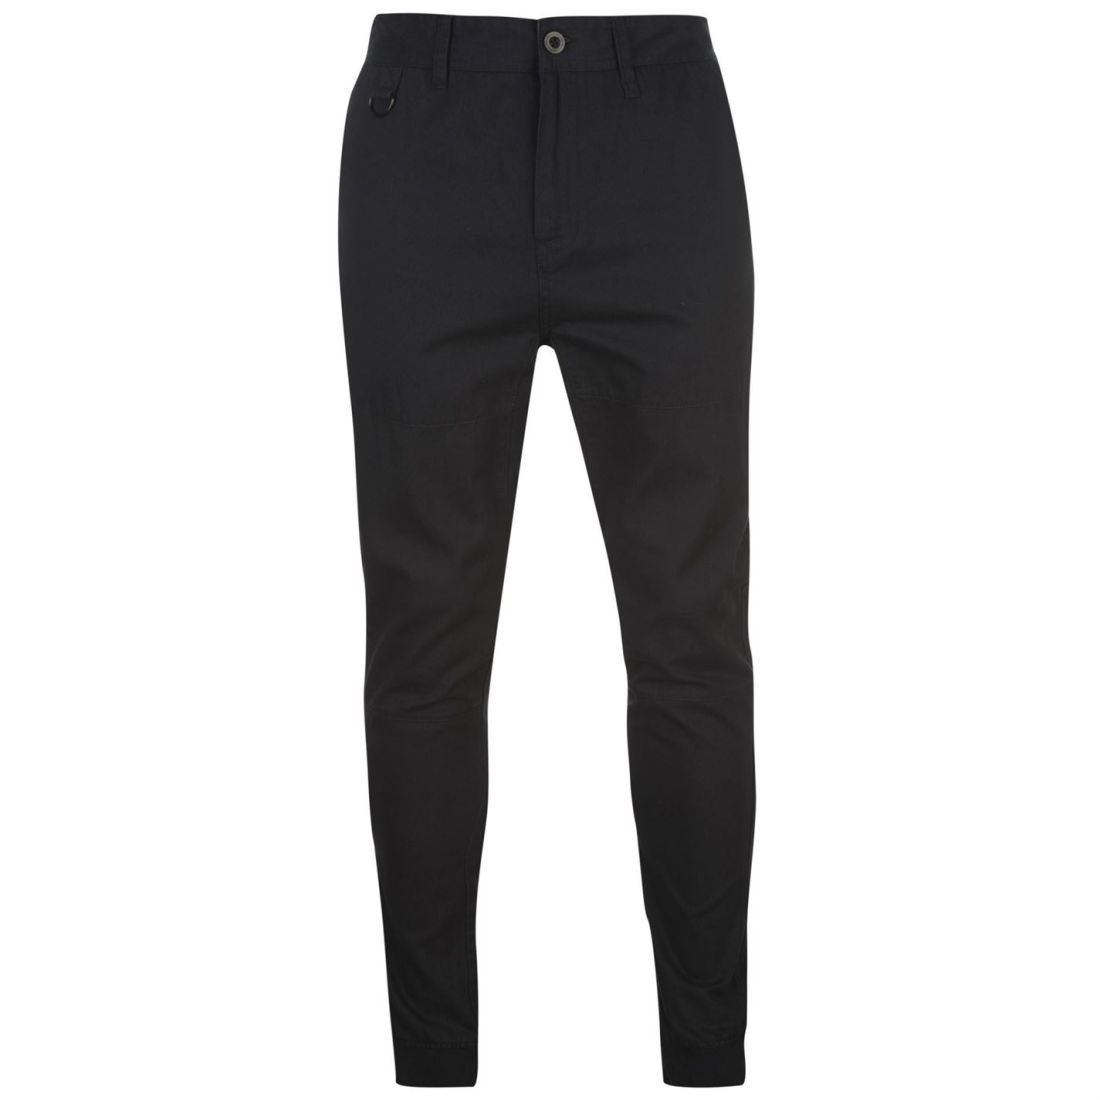 b76f14e6bd345d Airwalk Mens Woven Jogging Bottoms Sweat Pants Joggers Zip Cotton Ribbed  Ankle